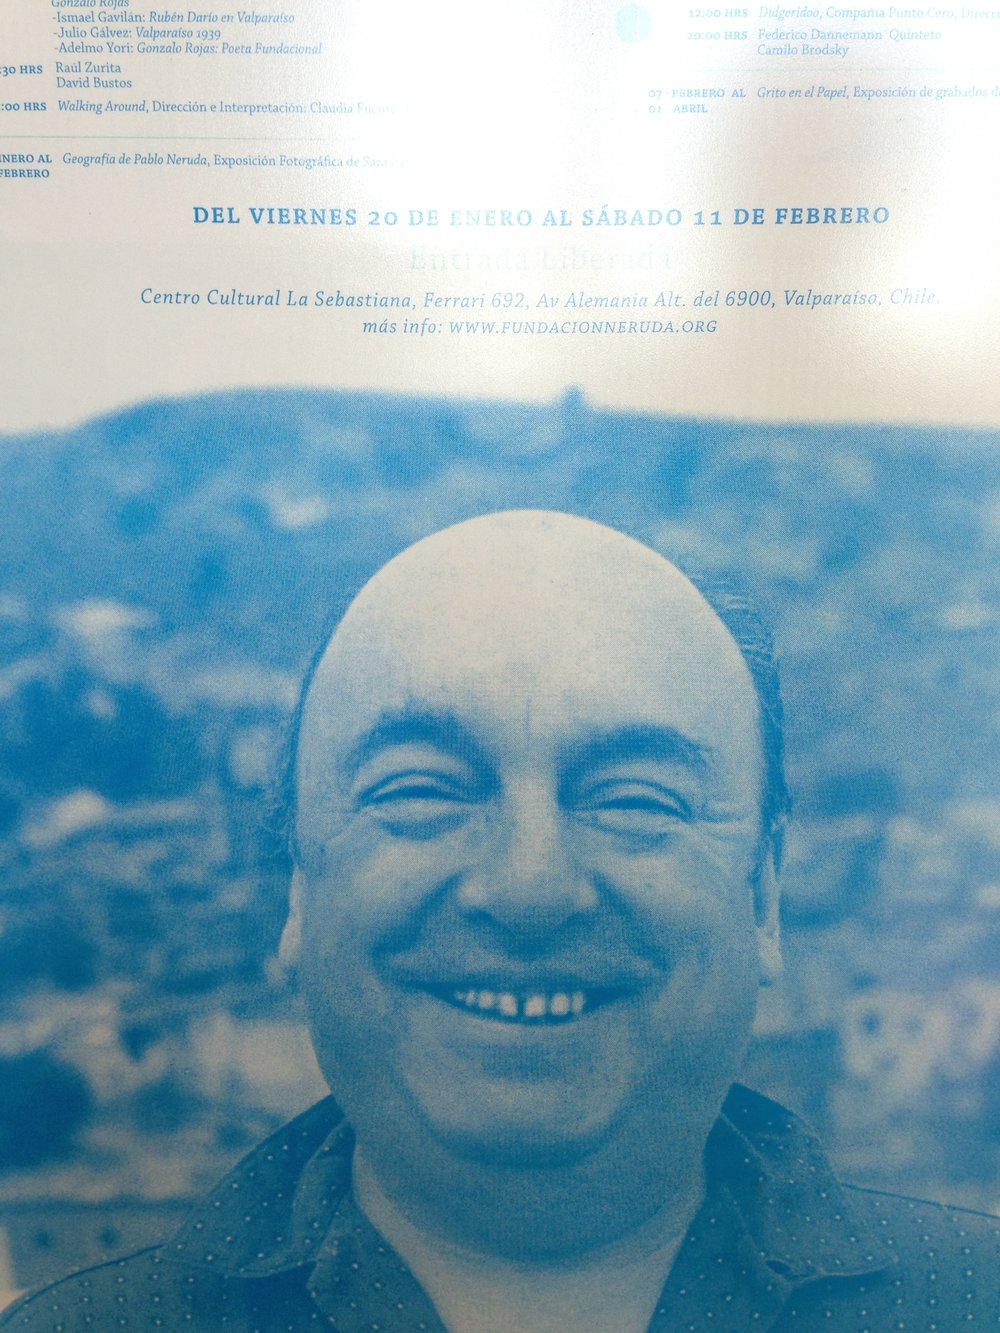 Rare photo of Pablo Neruda smiling